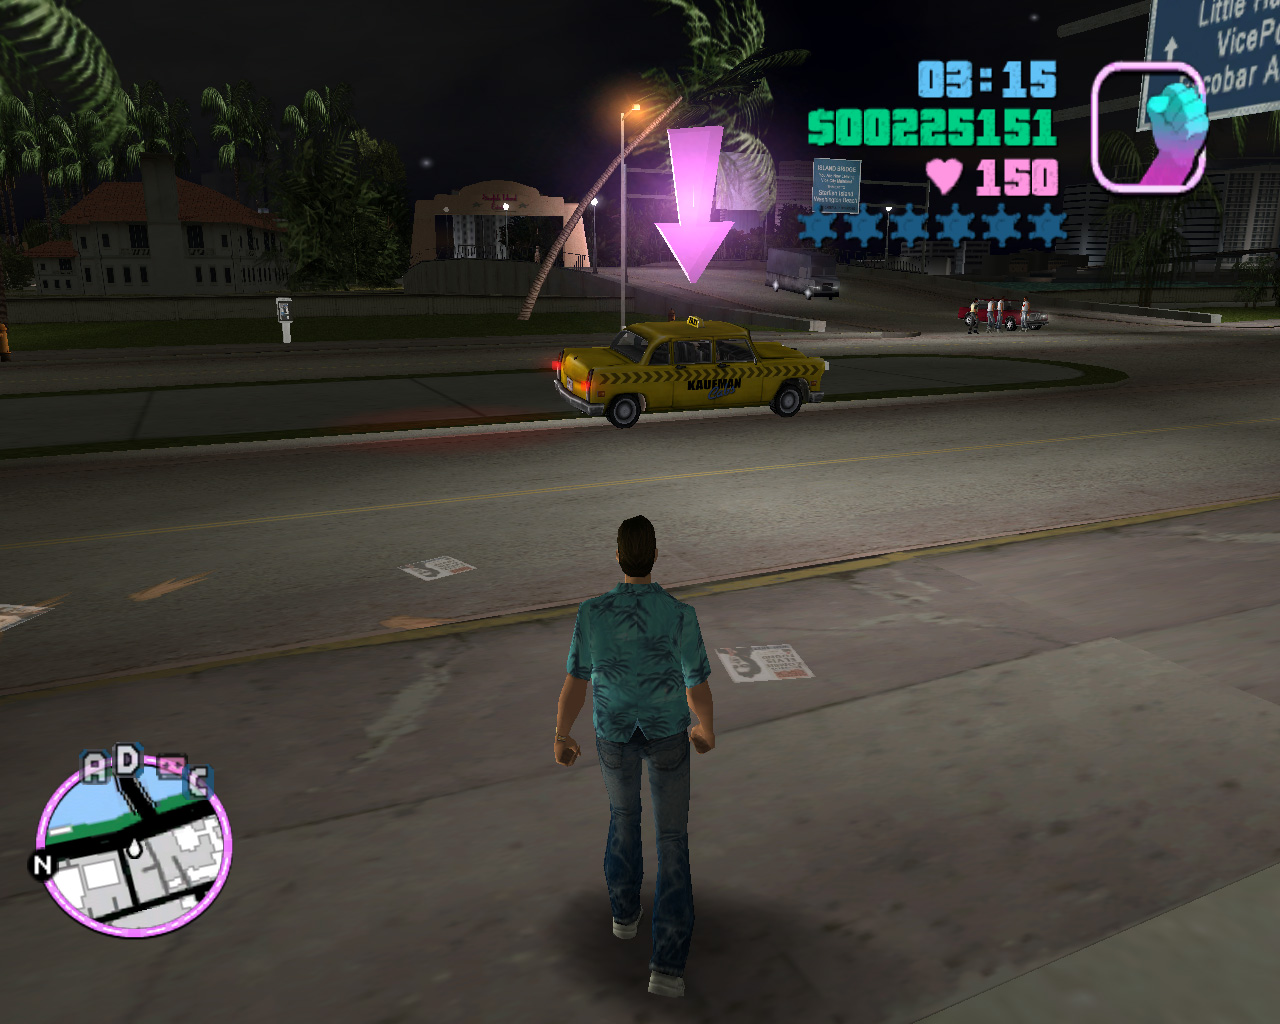 A Kaufman Cab In Gta Vice City Waiting In Front Of A Hospital To Take The  Player To The Trigger That Activates The Last Mission The Player Attempted,